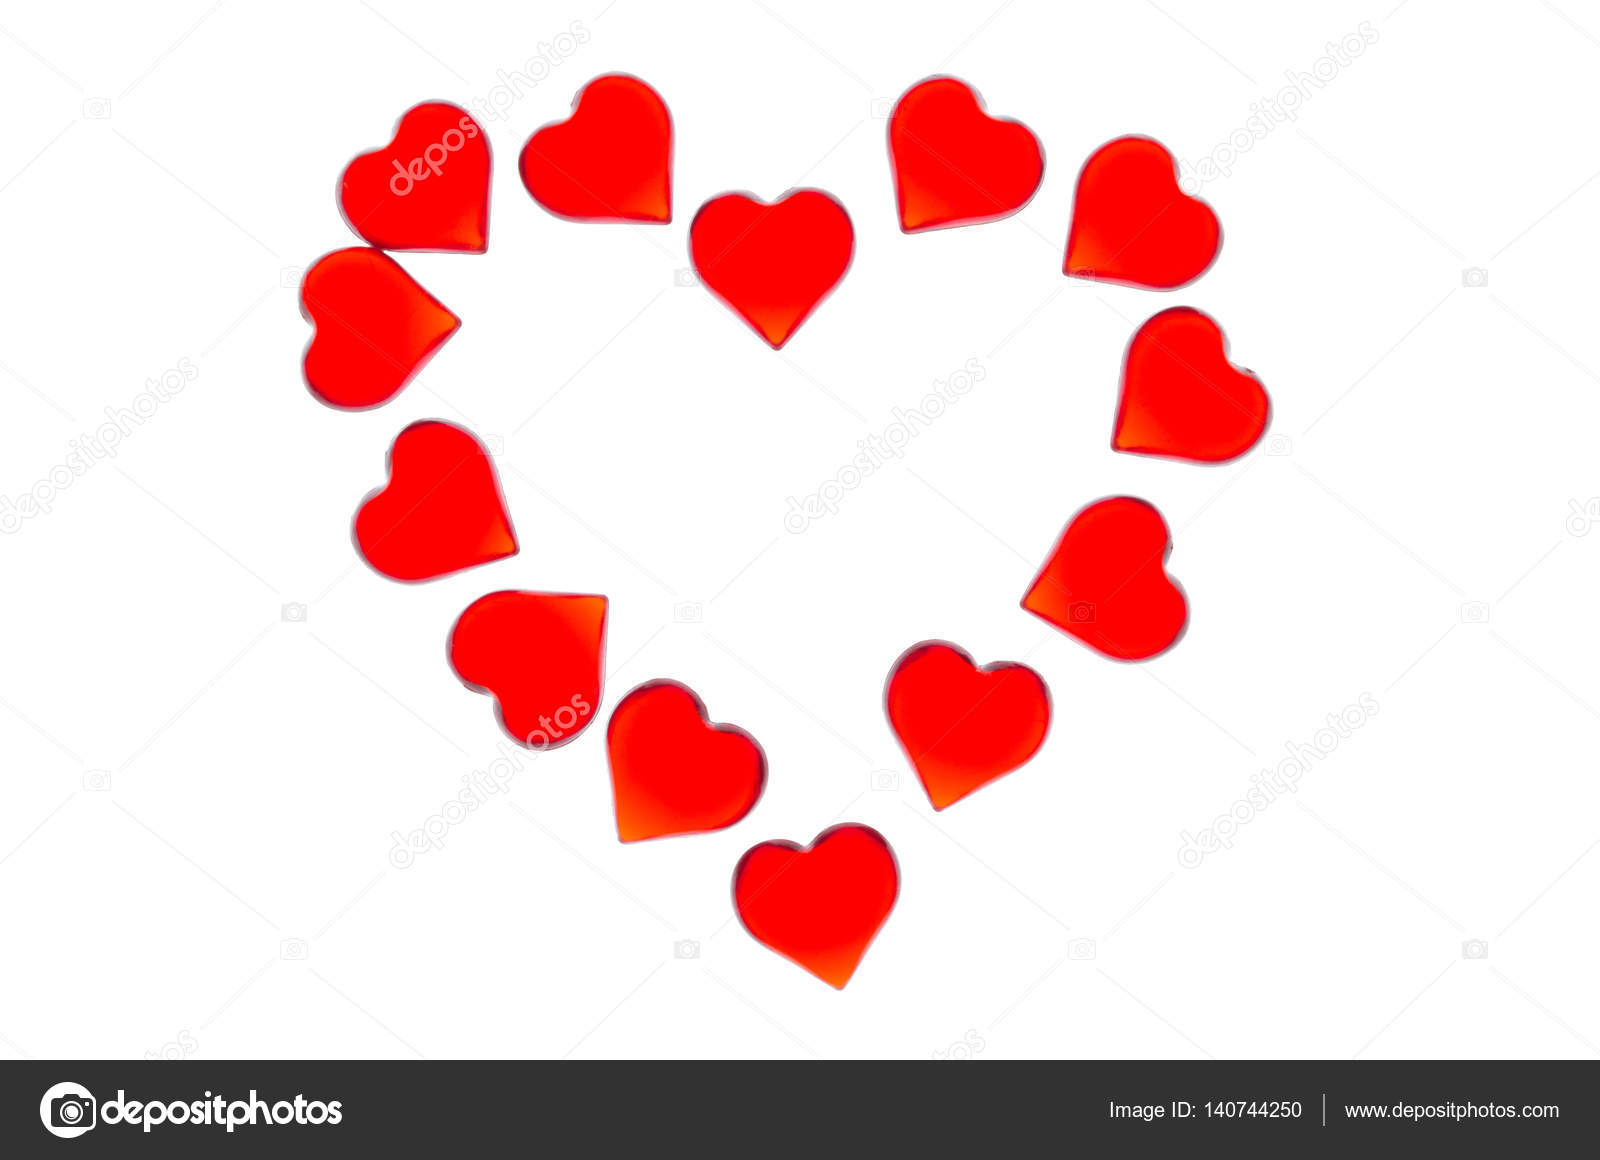 Bright Red Hearts On A Striped Background In The Form Of A Large